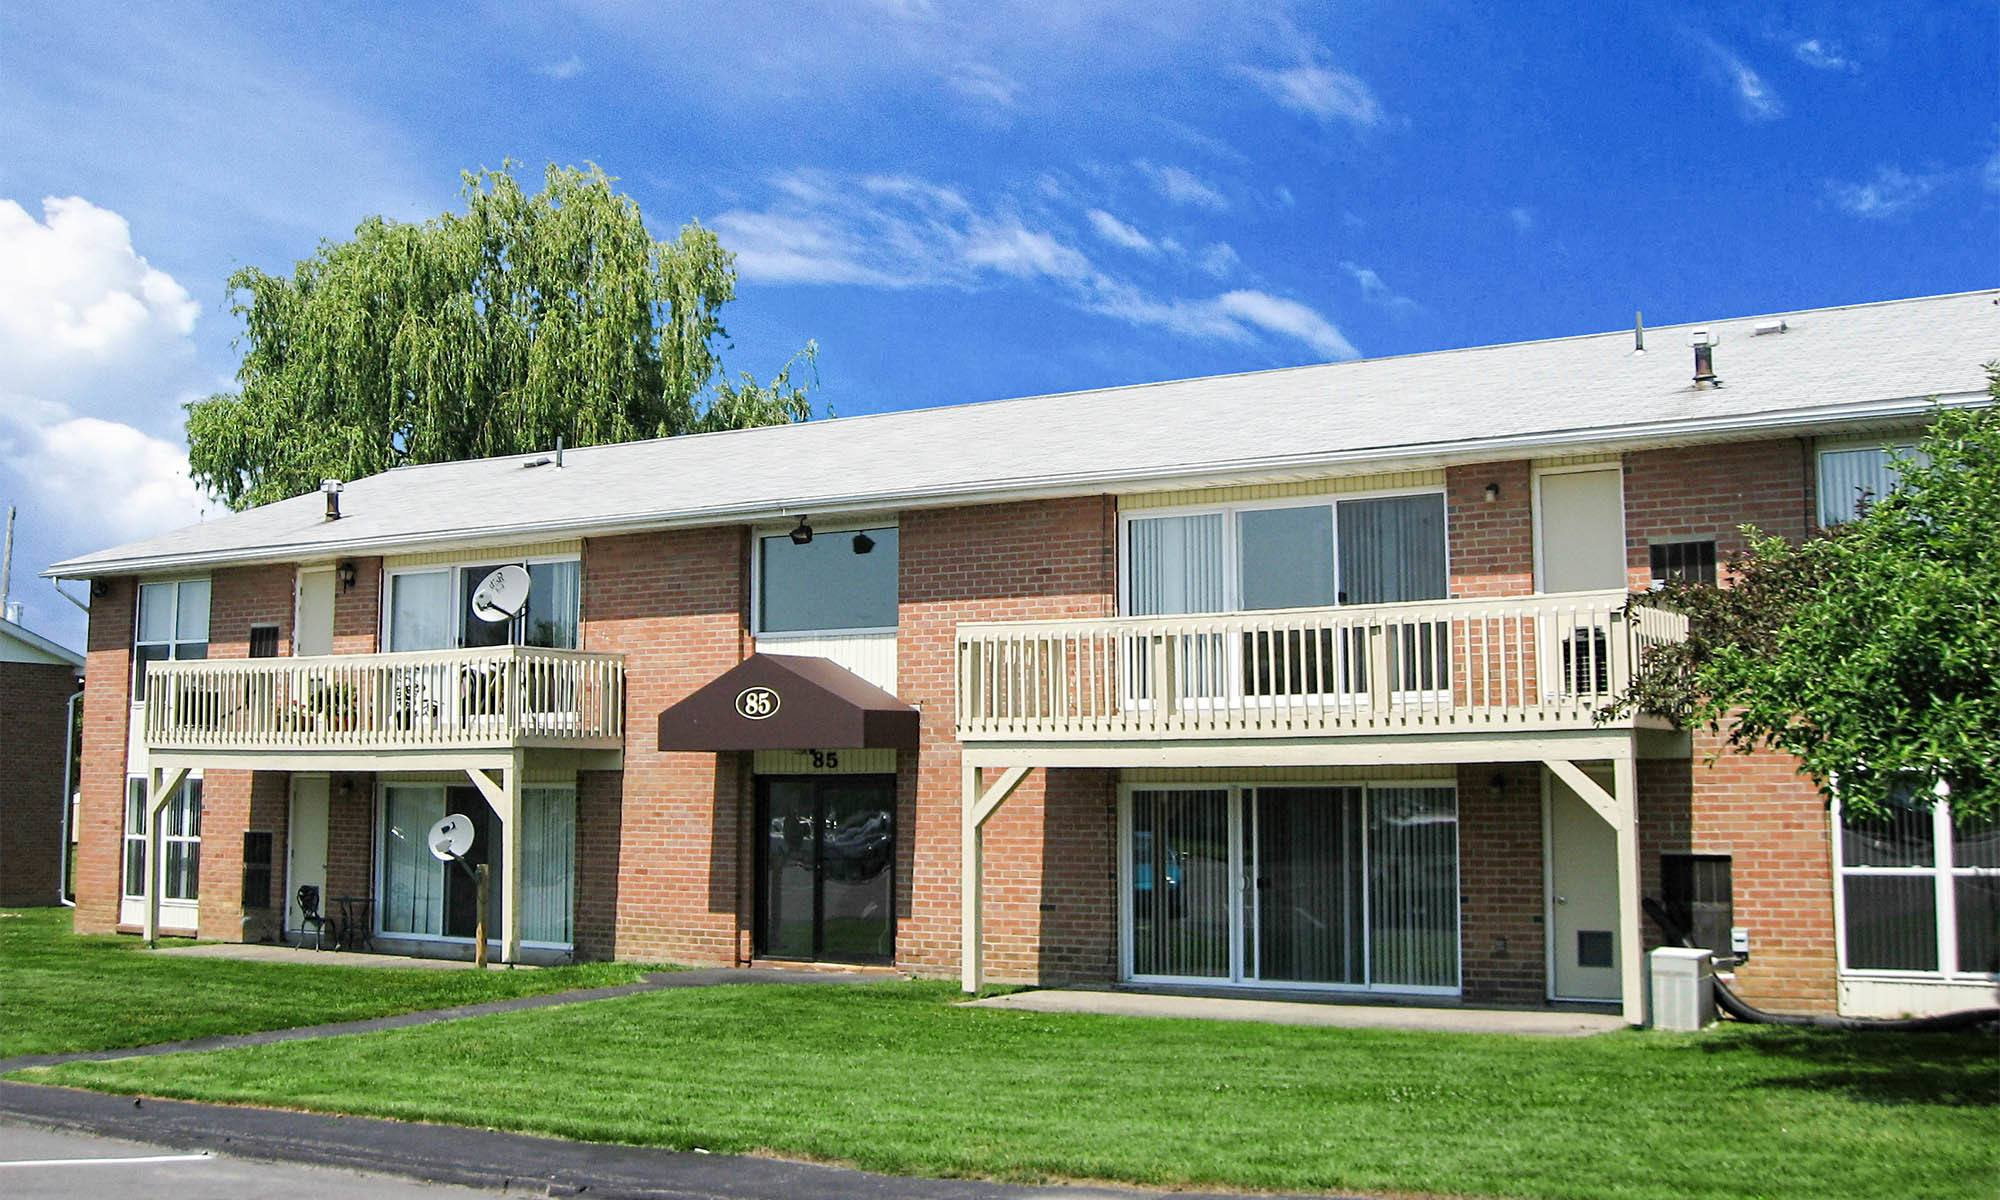 100 3 Bedroom Apartments For Rent In Albany Ny